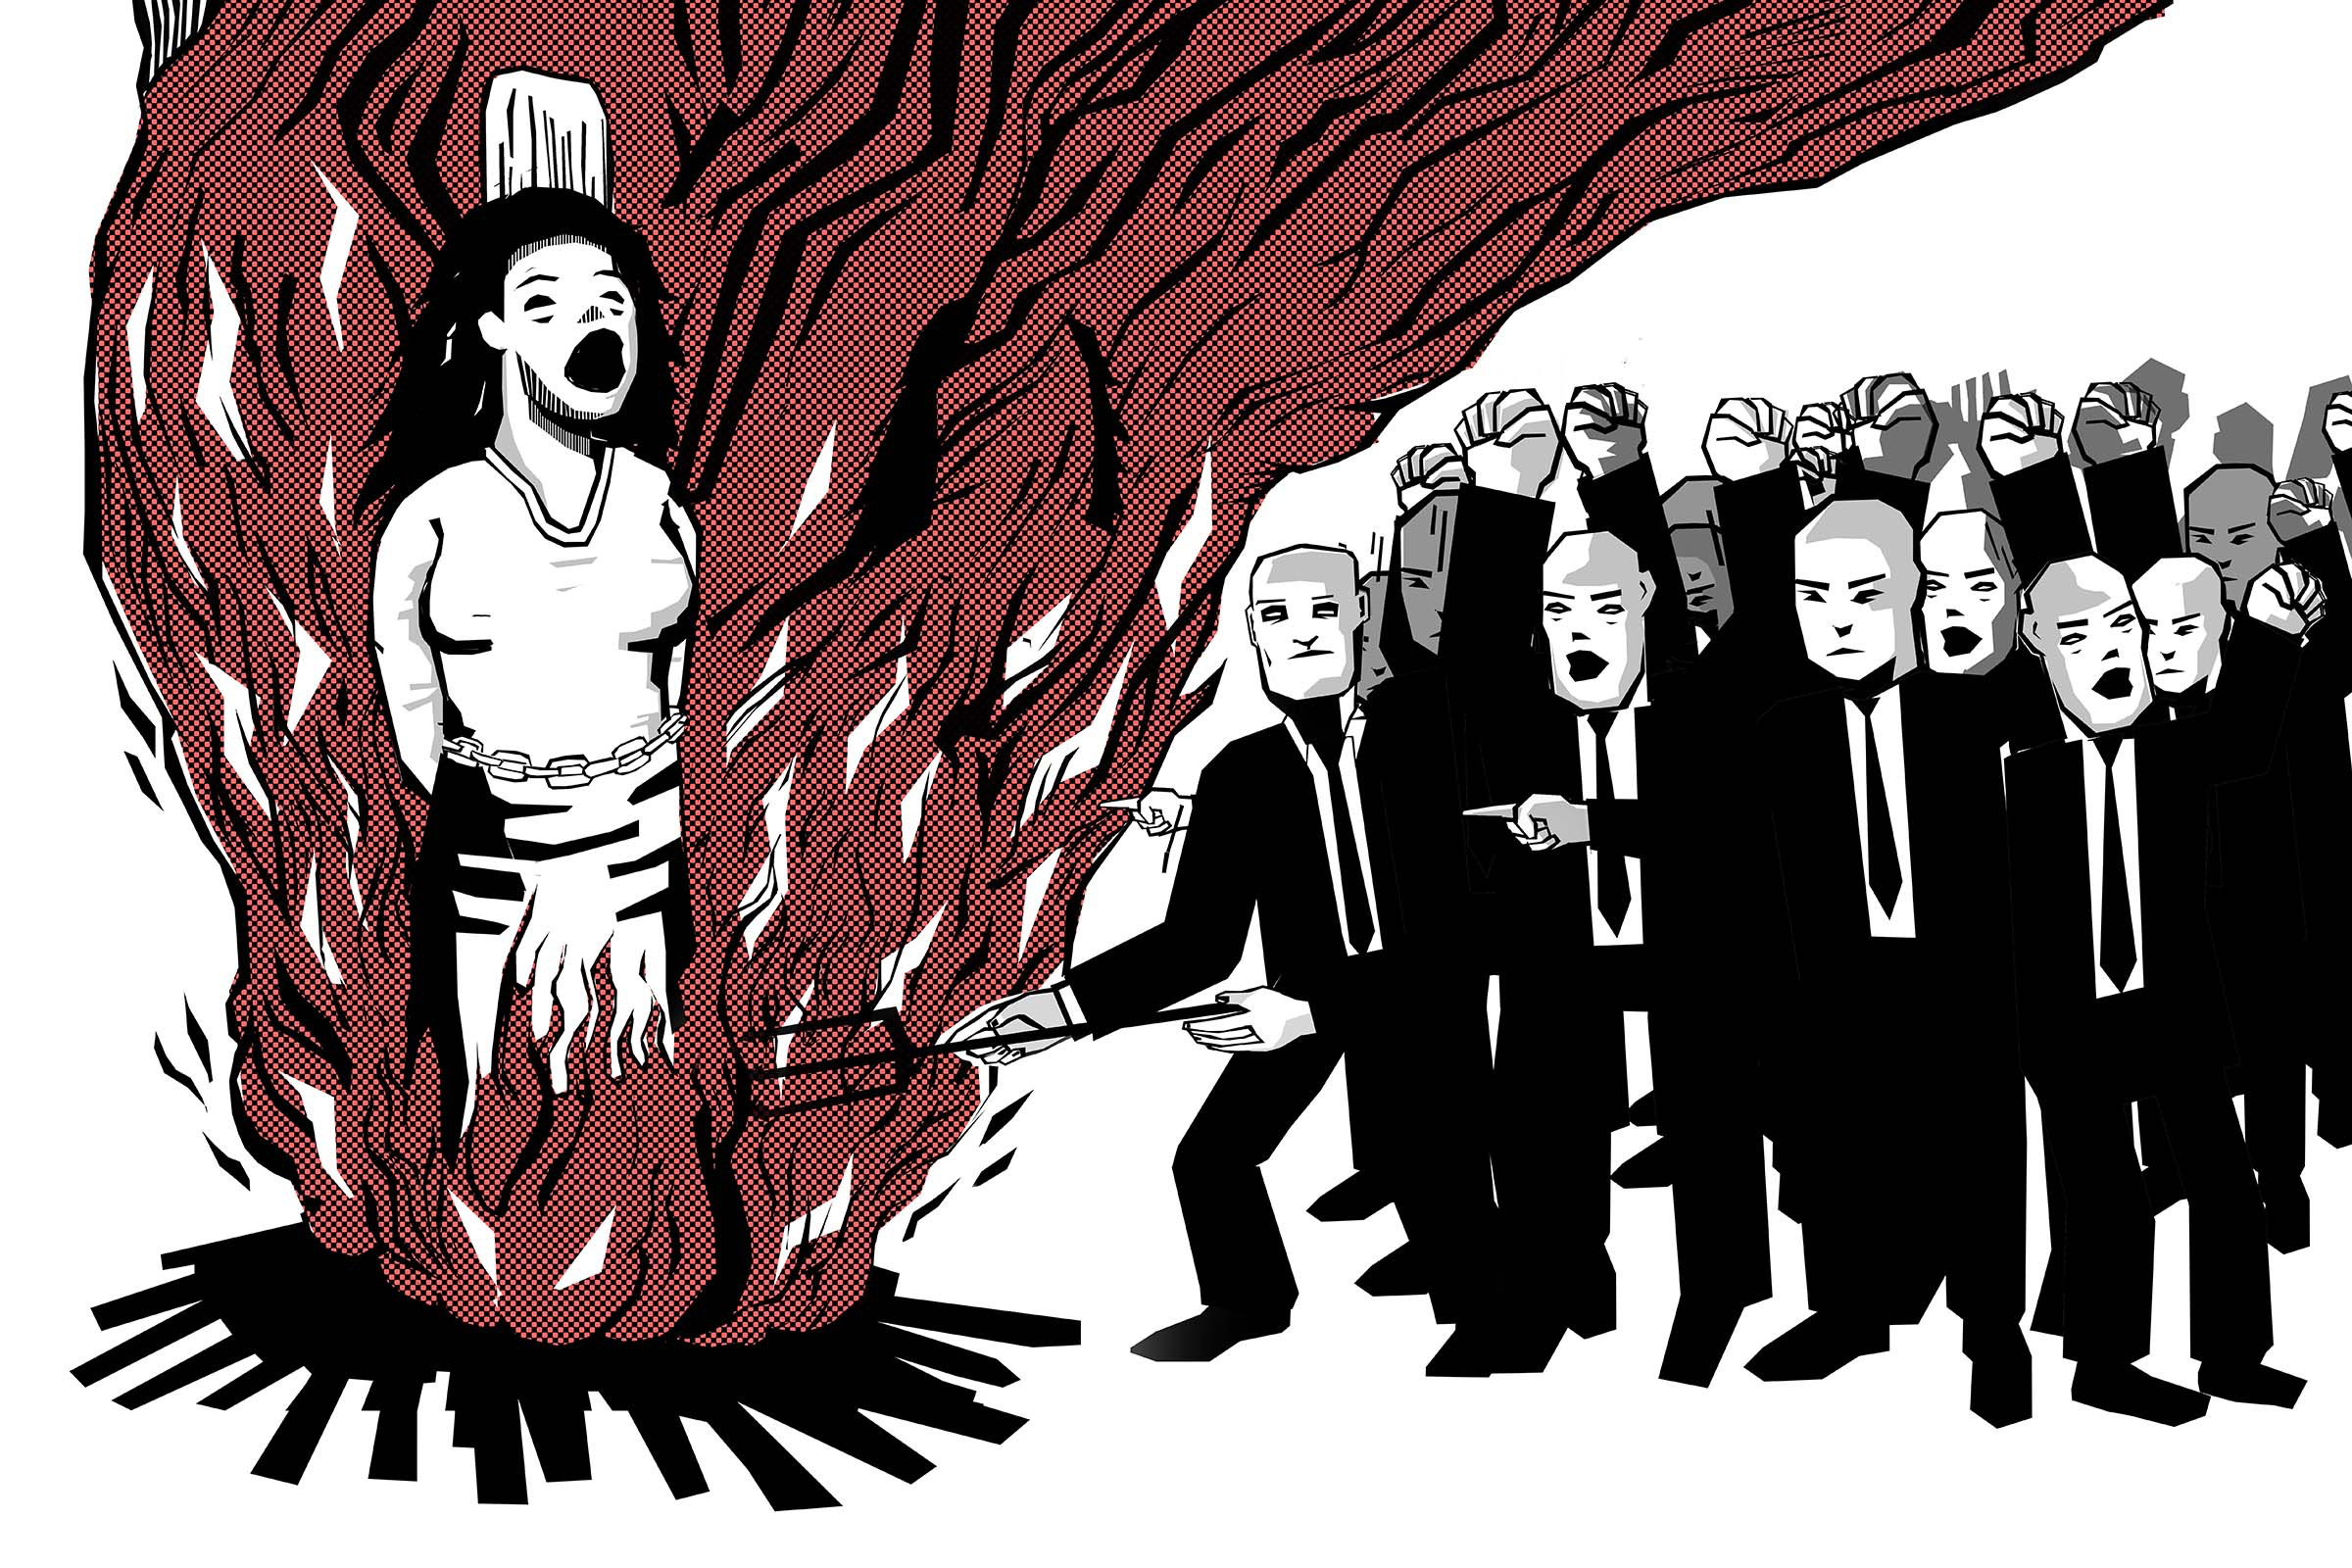 Capitalist development began with a war on women, argues Silvia Federici in this extract from her new book 'Witches, Witch-Hunting, and Women.' (Illustration by Nivesh Rawatlal)